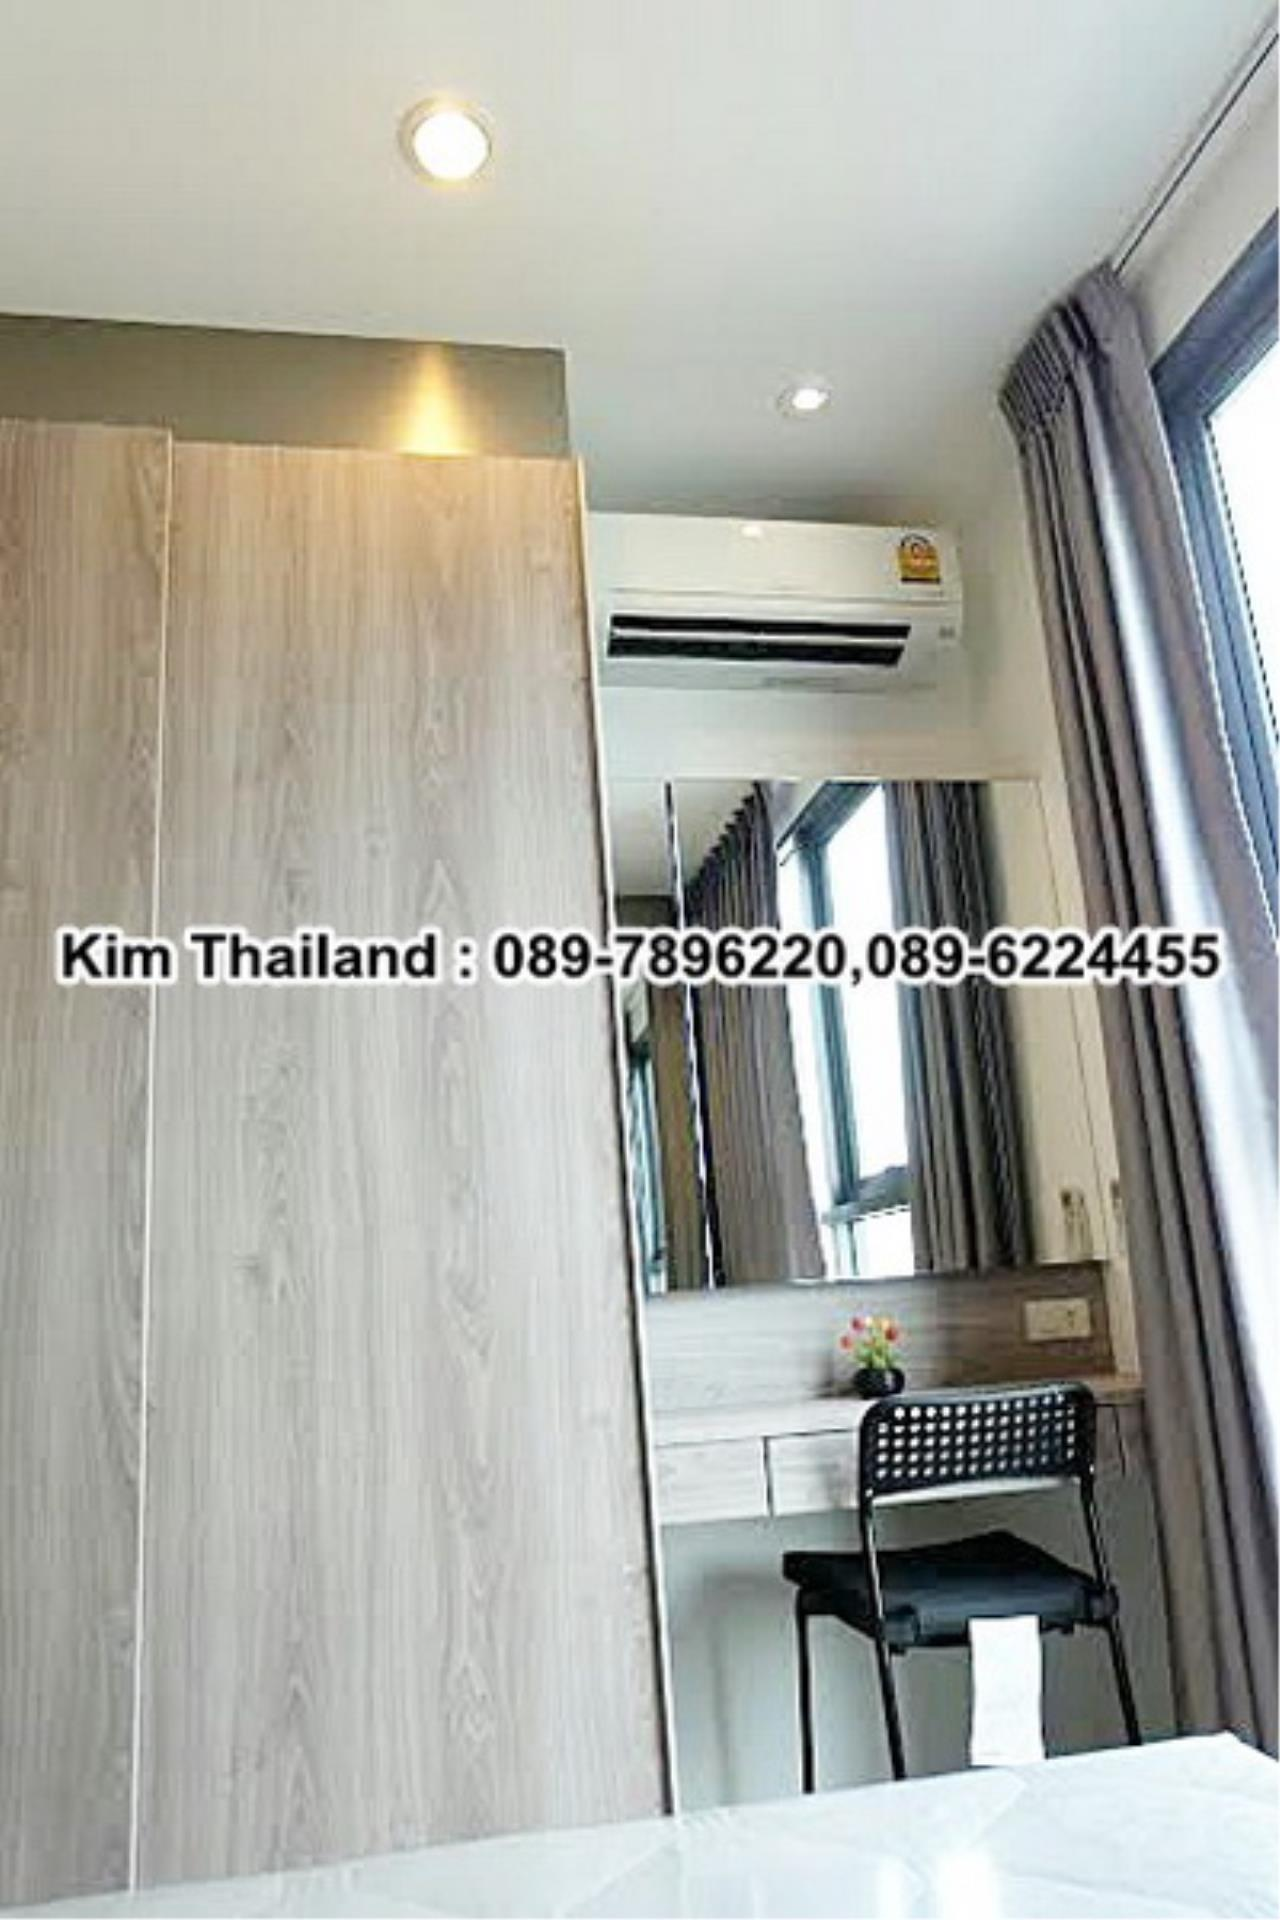 BKKcondorental Agency's Condo for rent,Condo Ideo Q Samyan. Area 29 sqm. 1 bedroom.  Rent 23,000 baht /month. 15